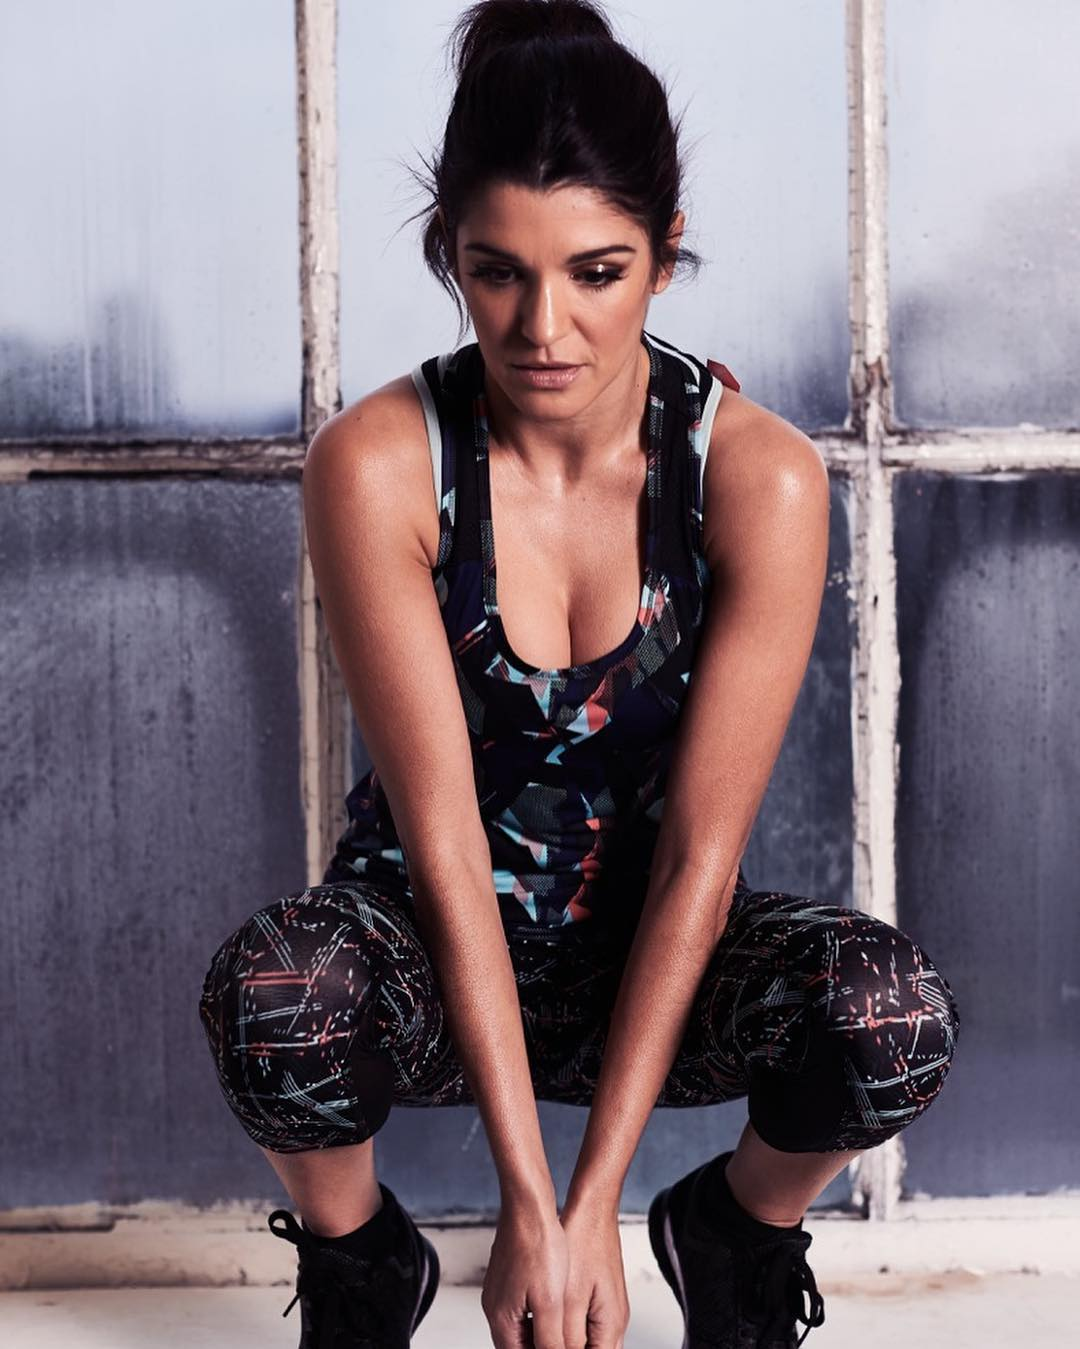 Natalie Anderson on Working Out